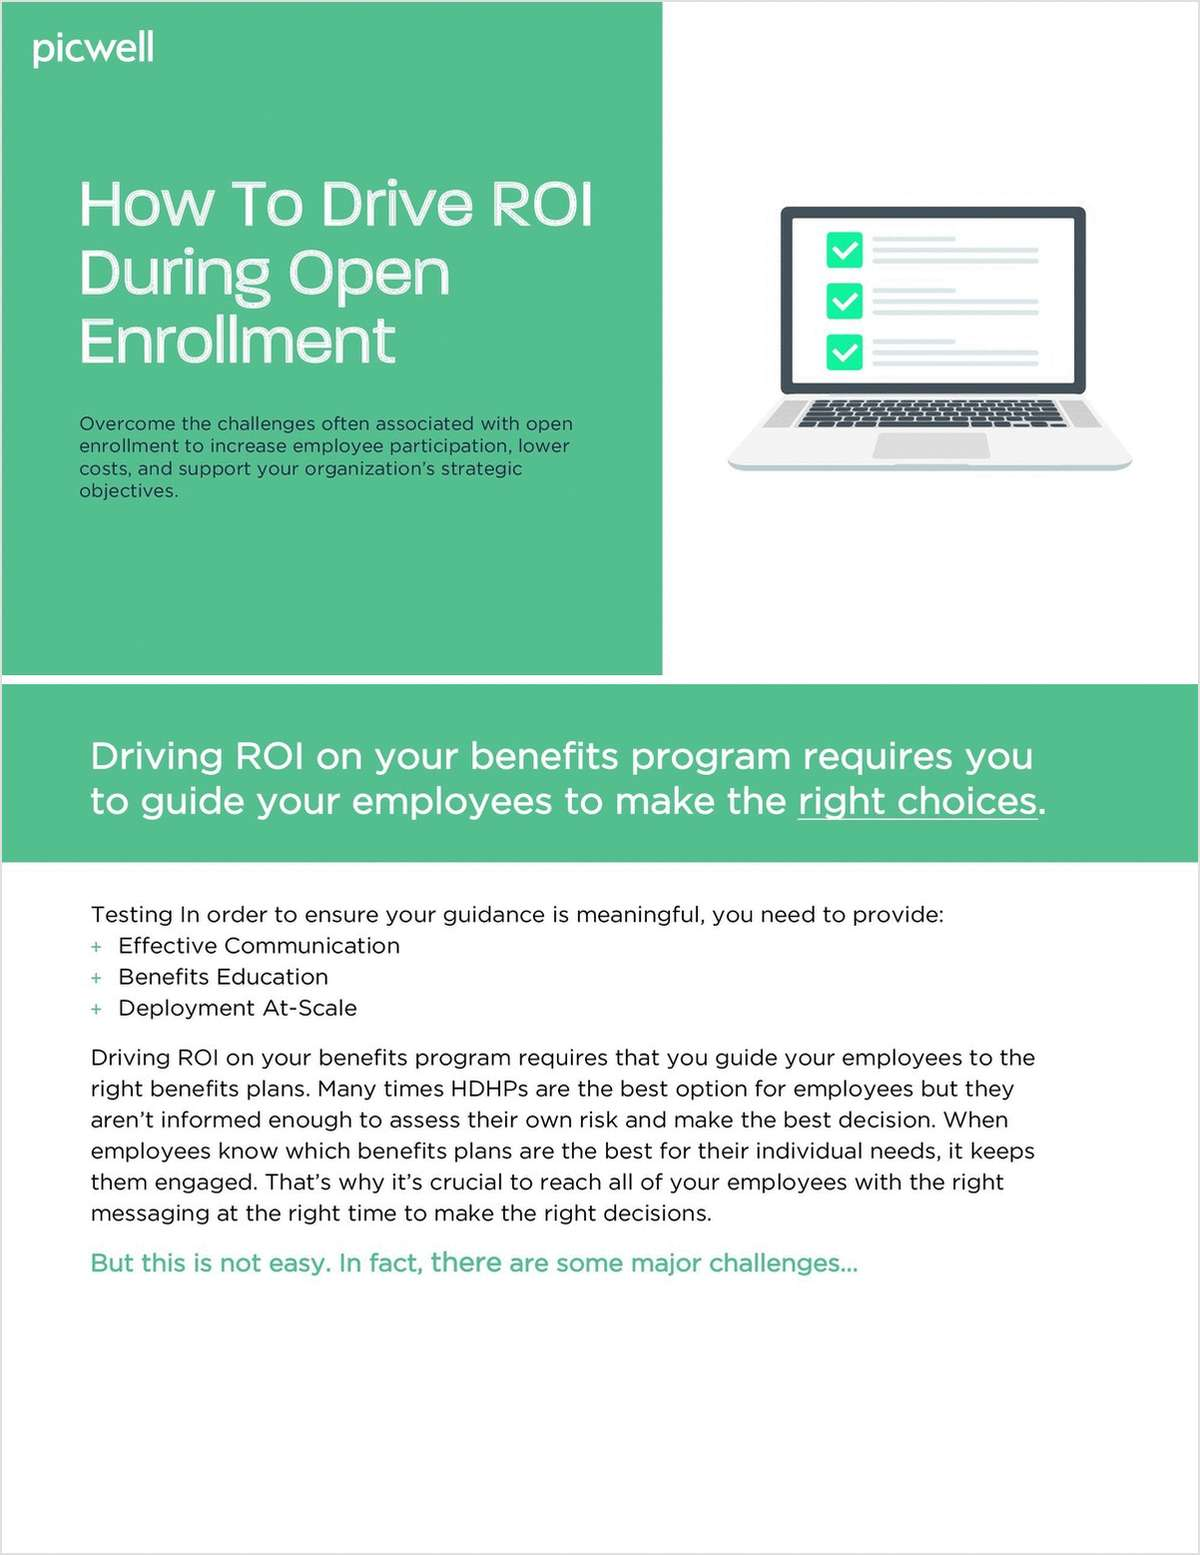 How to Drive ROI During Open Enrollment